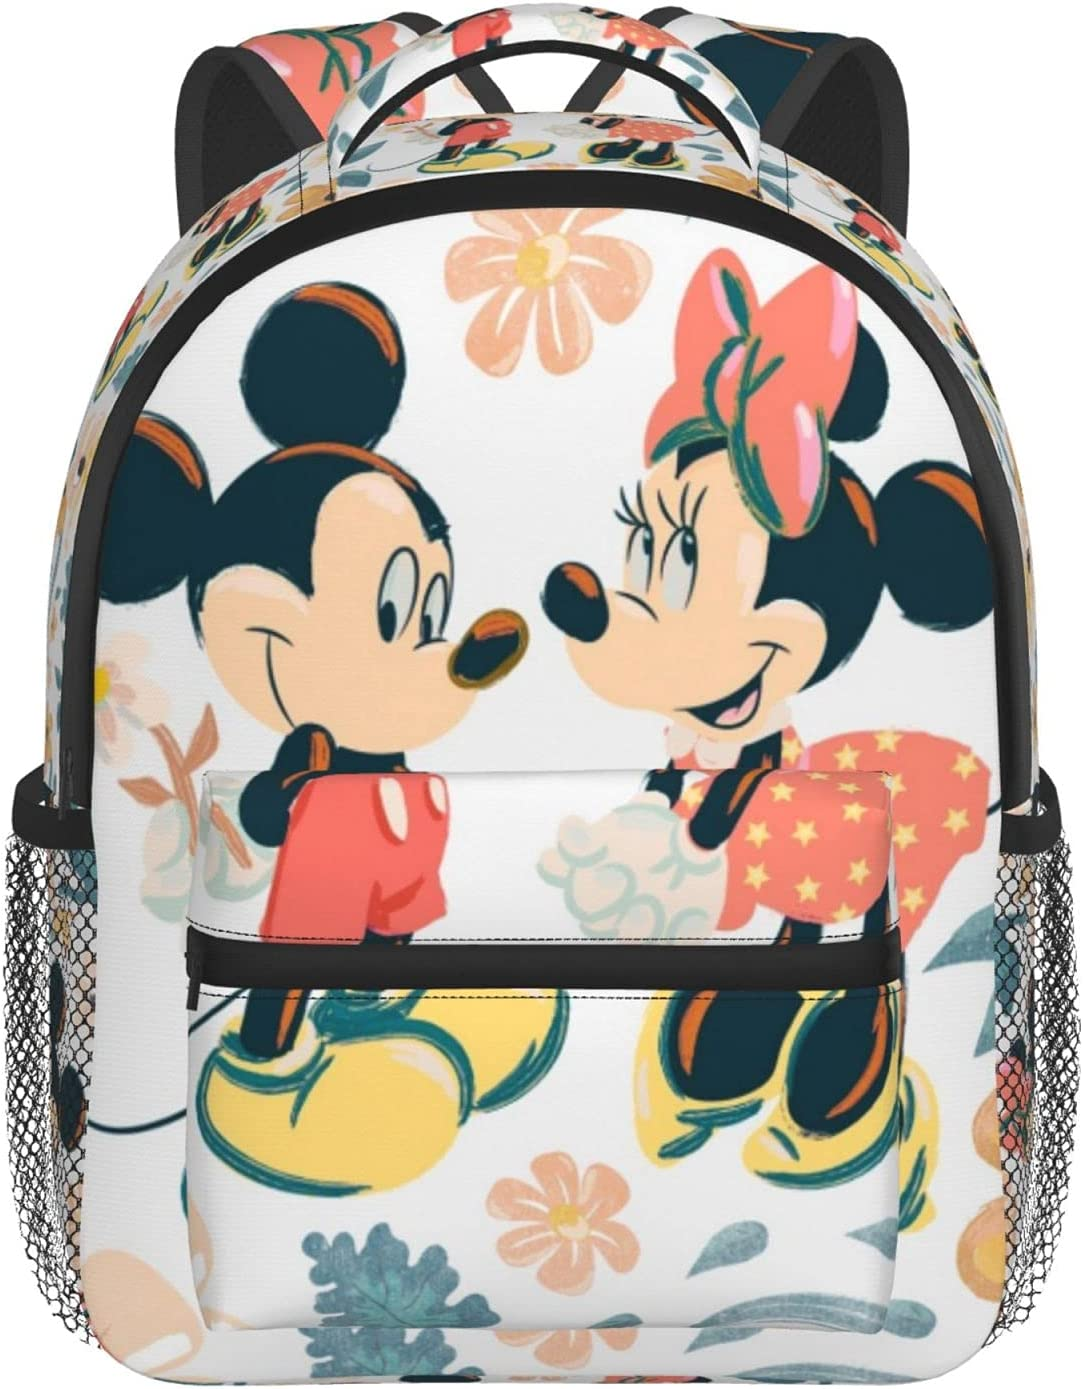 Anime Cartoon Mi-Nnie Mou-Se Backpack Toddler outlet Louisville-Jefferson County Mall Bookbag L